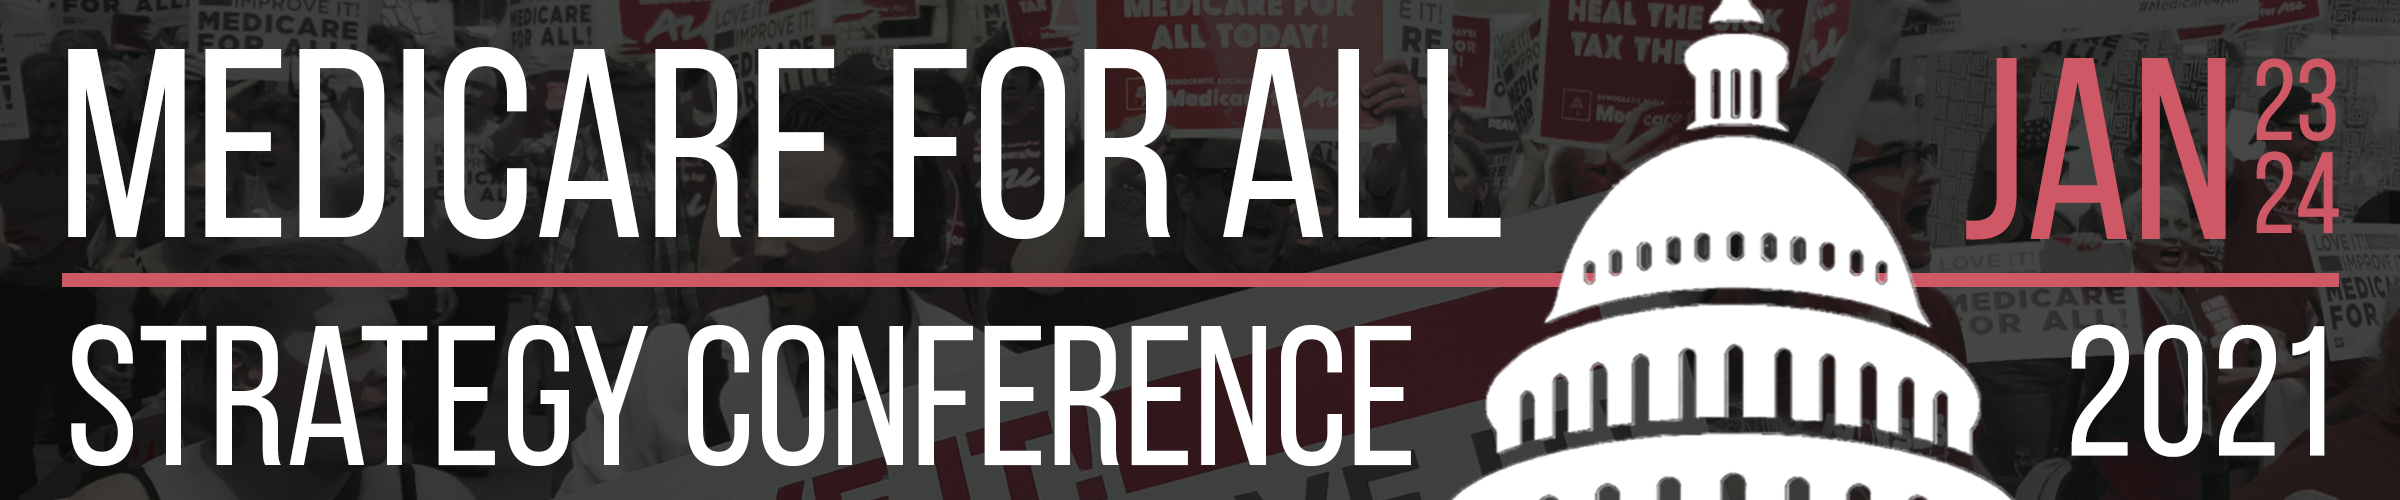 2021 Medicare for All Conference